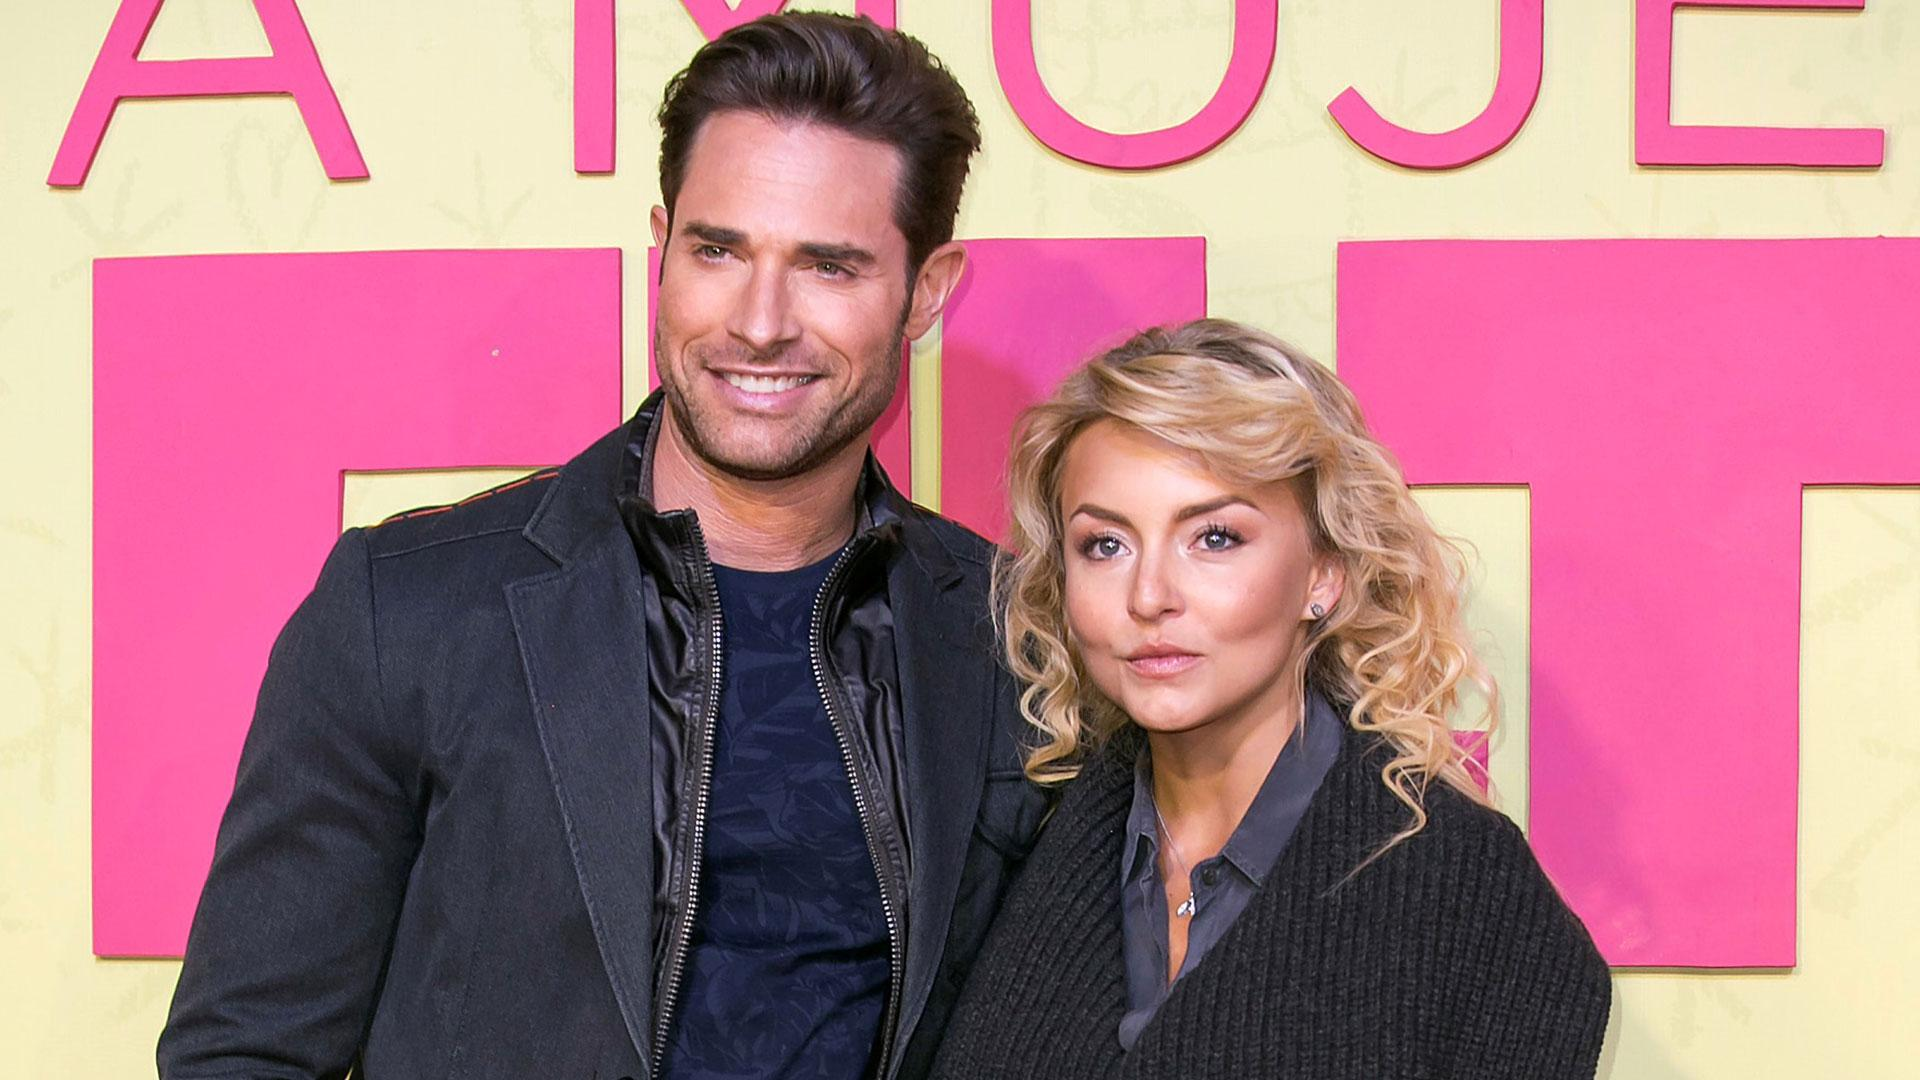 Angelique Boyer Movies And Tv Shows sebastian rulli wallpapers - wallpaper cave